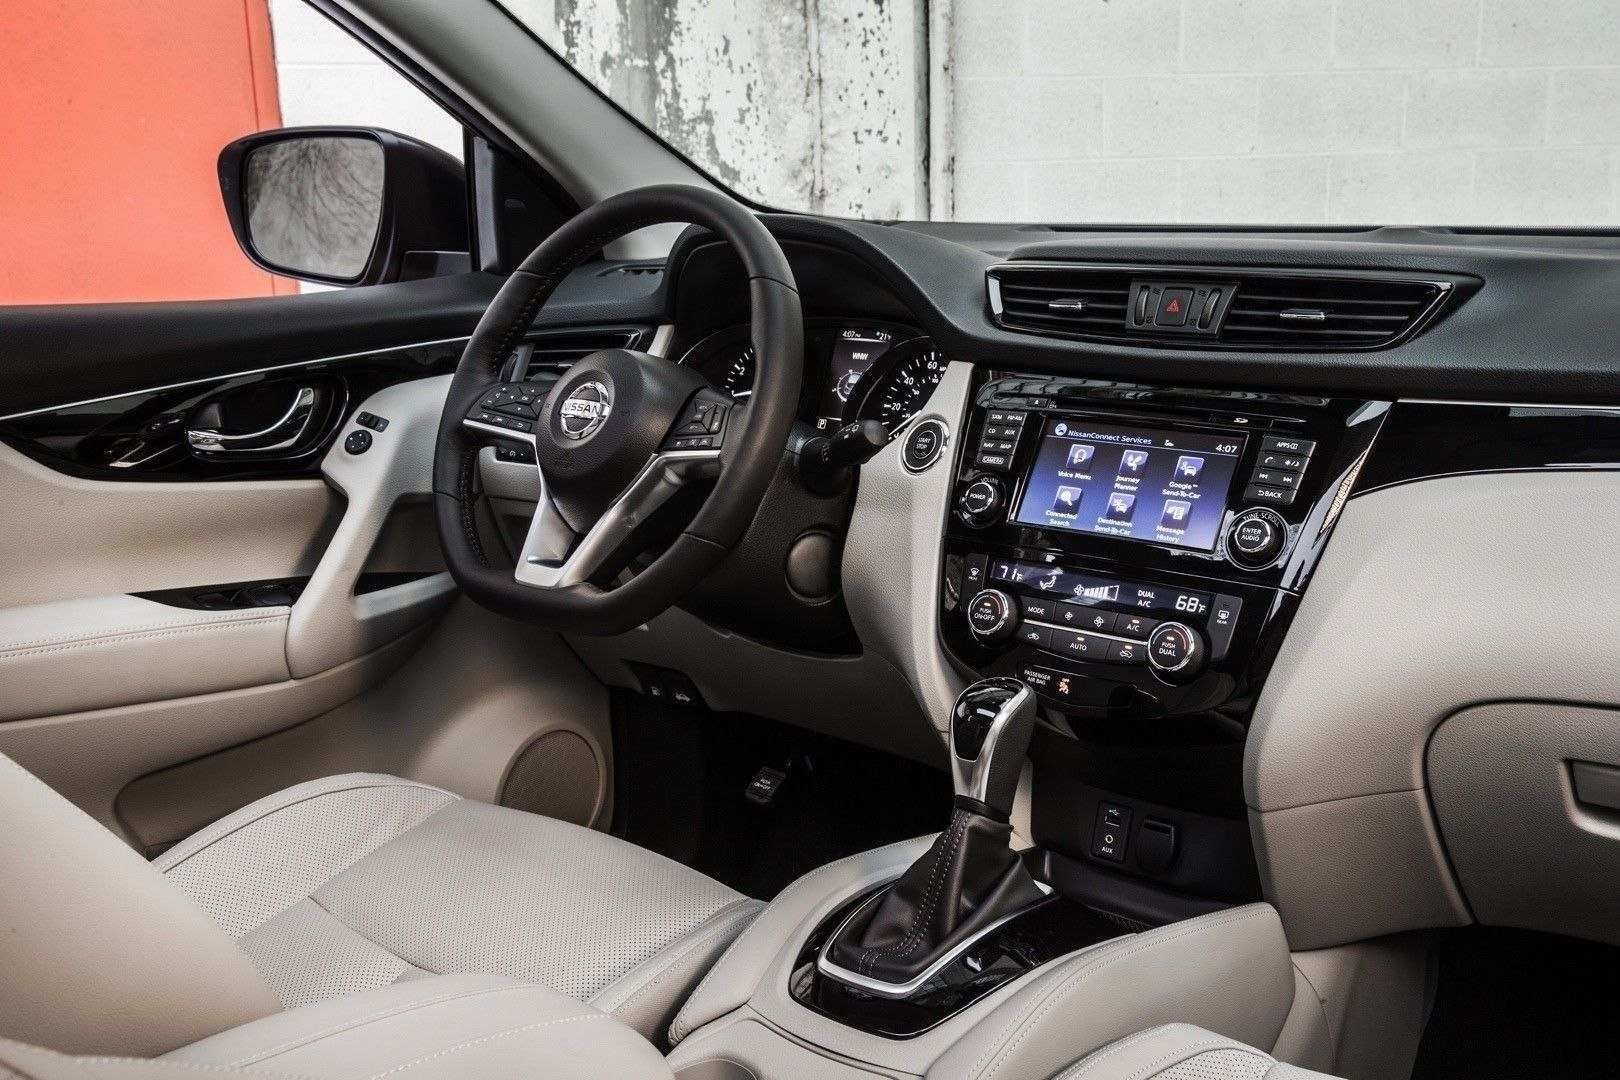 22 All New Nissan Qashqai 2020 Interior Performance by Nissan Qashqai 2020 Interior